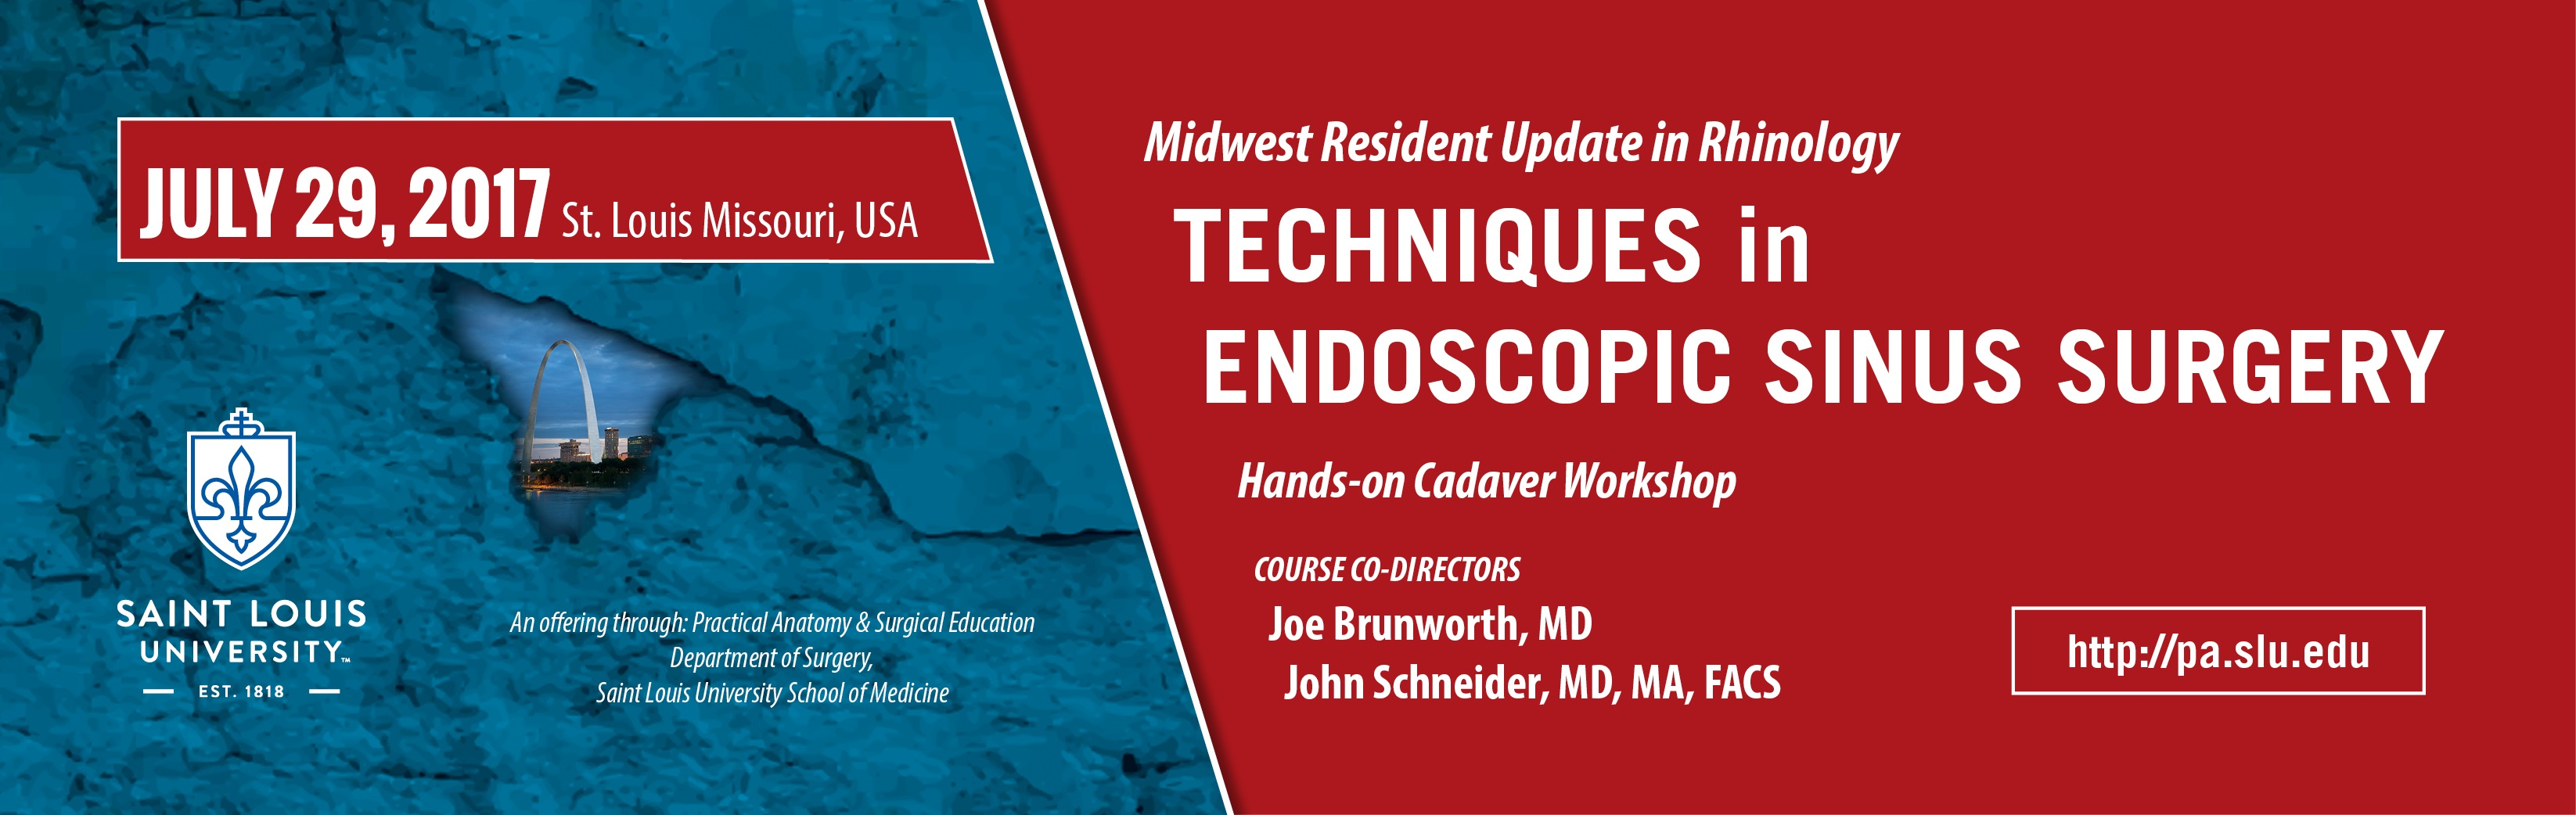 Resident Update in Rhinology: Techniques in Endoscopic Sinus Surgery